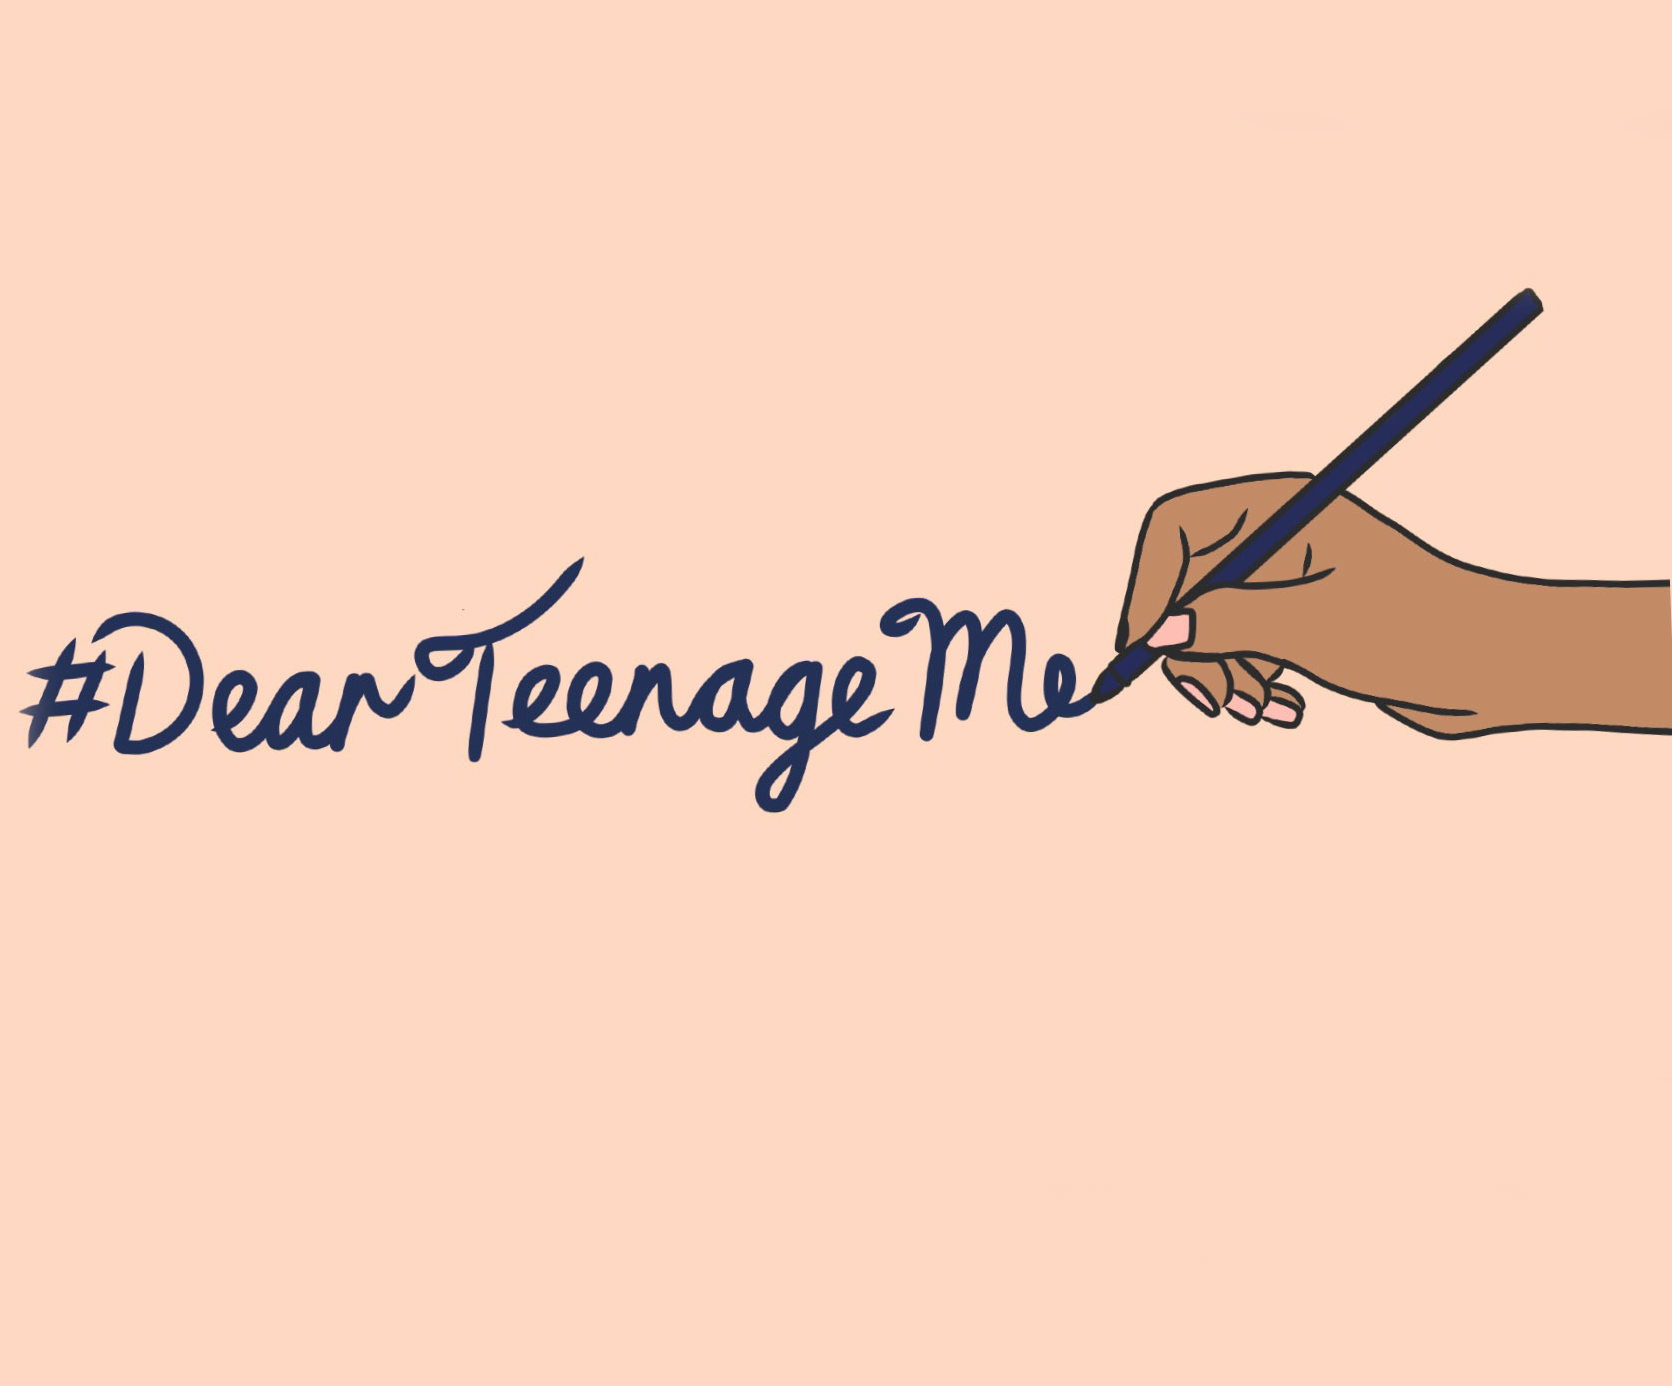 Dear Teenage Me